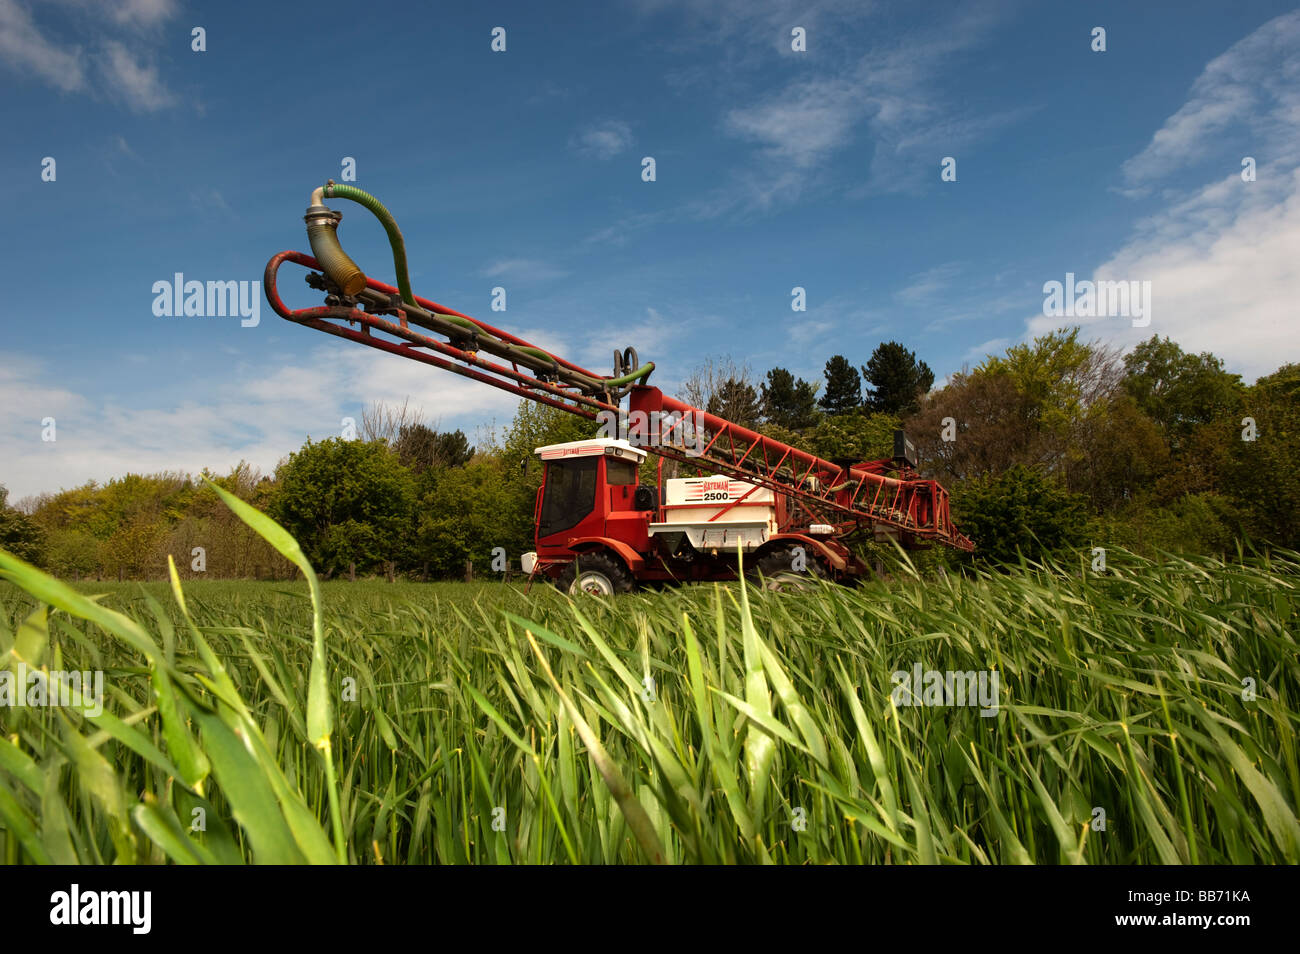 Bateman self propelled sprayer getting ready to spray wheat crop with a fungicide Durham - Stock Image